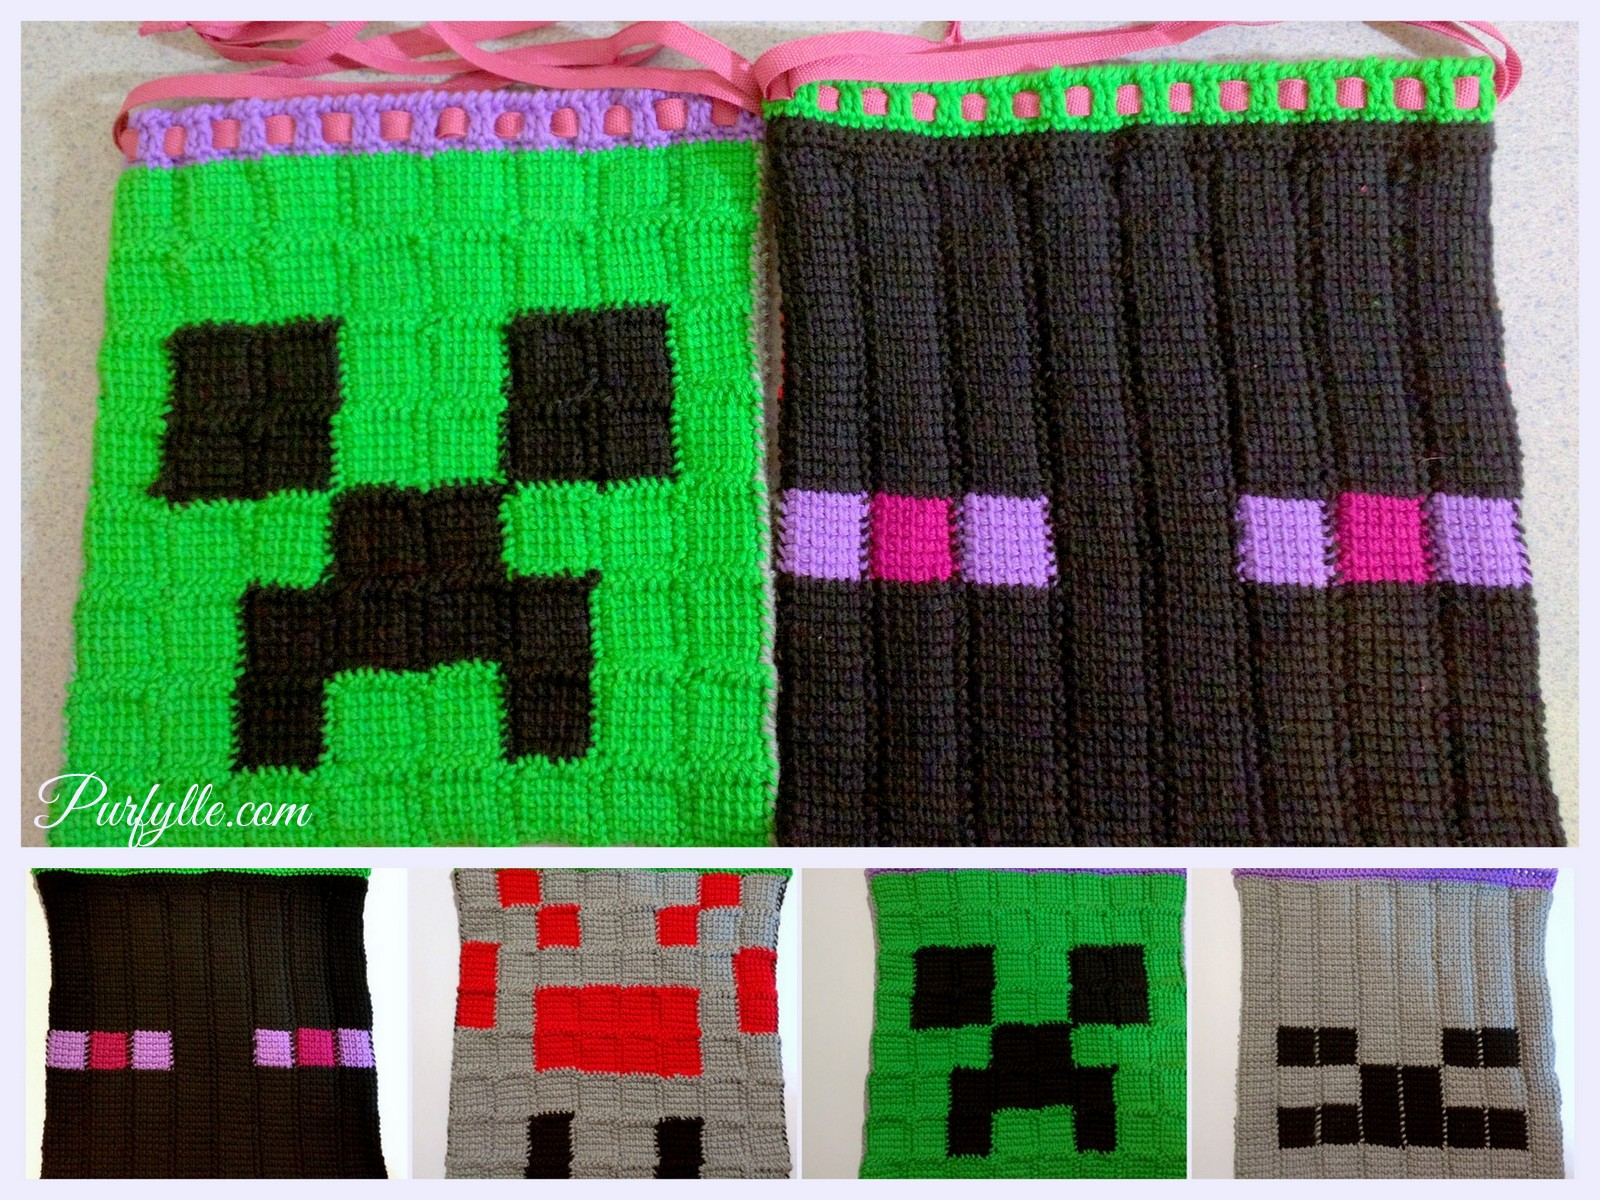 Purfylle: Minecraft Characters Tunisian Crochet Drawstring Bag Pattern for Minecraft Characters Pictures  45gtk